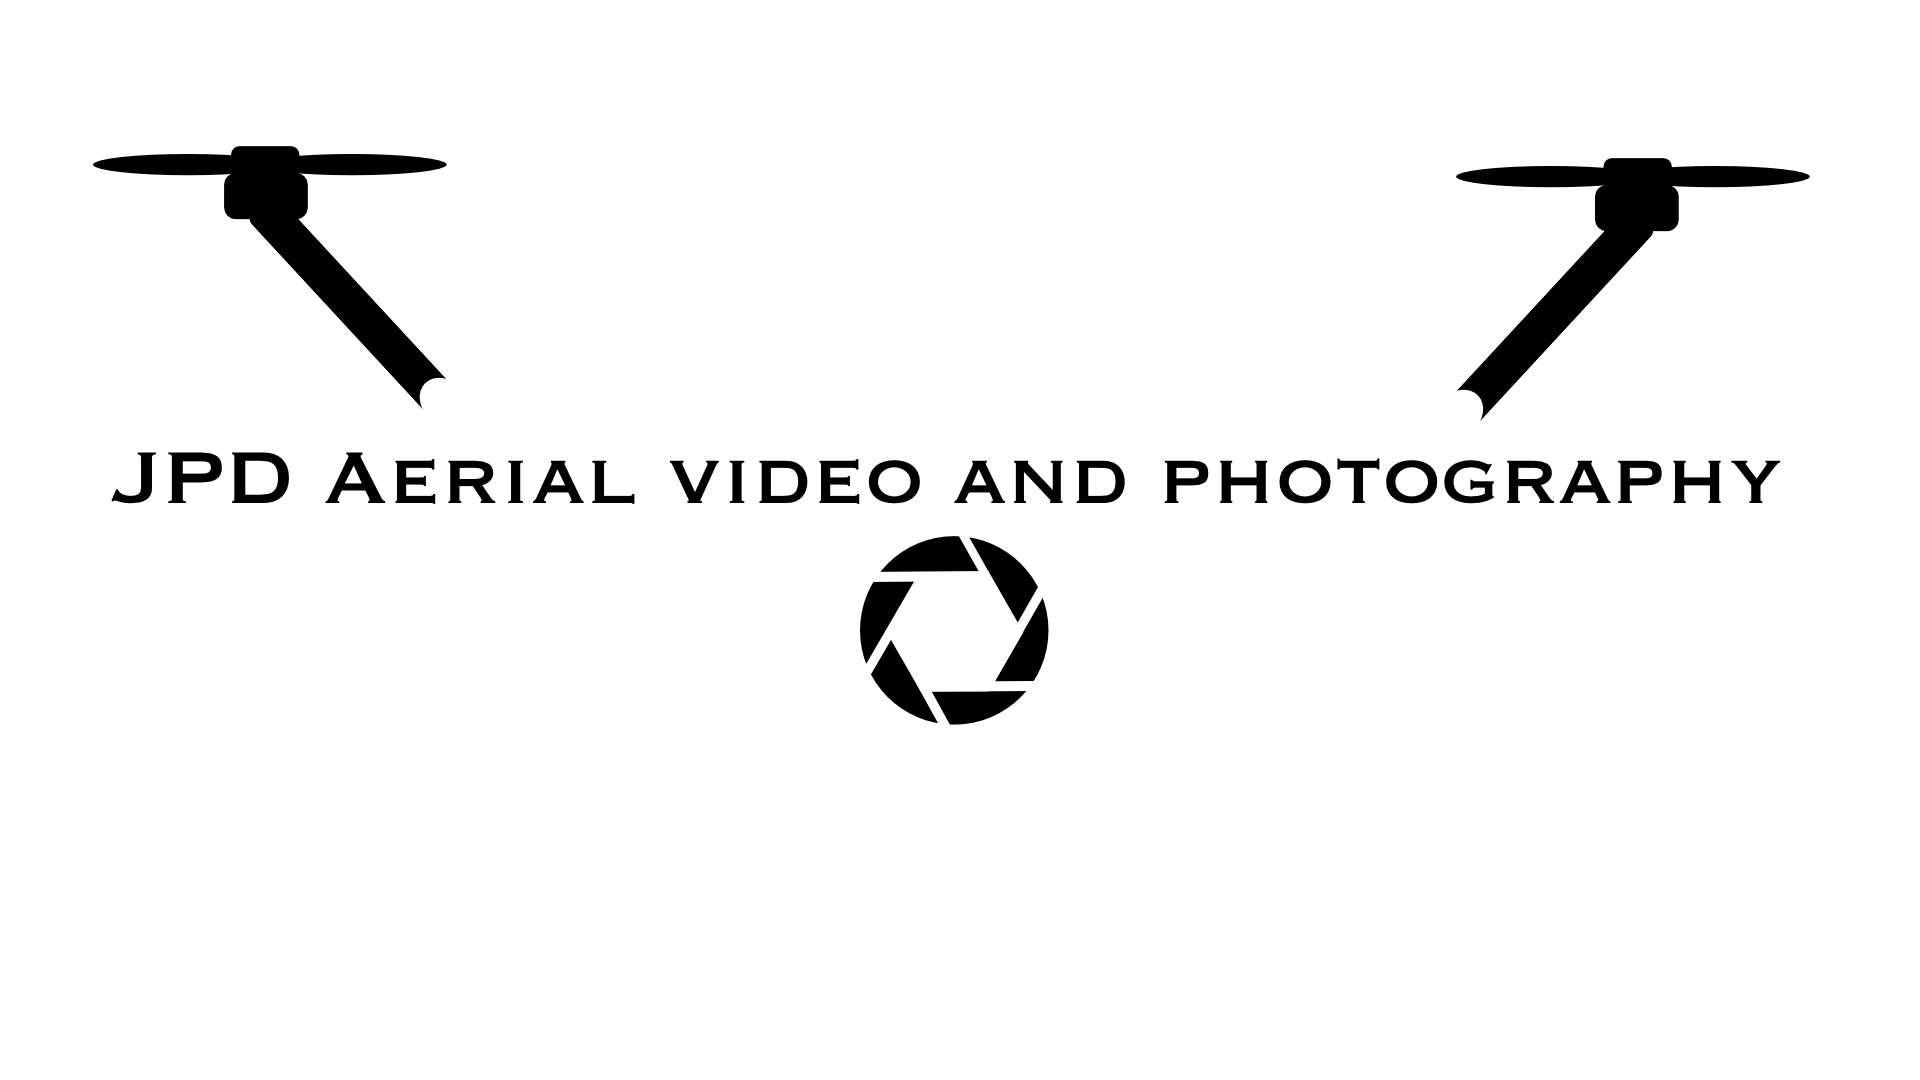 JPD AERIAL PHOTO AND VIDEOGRAPHY